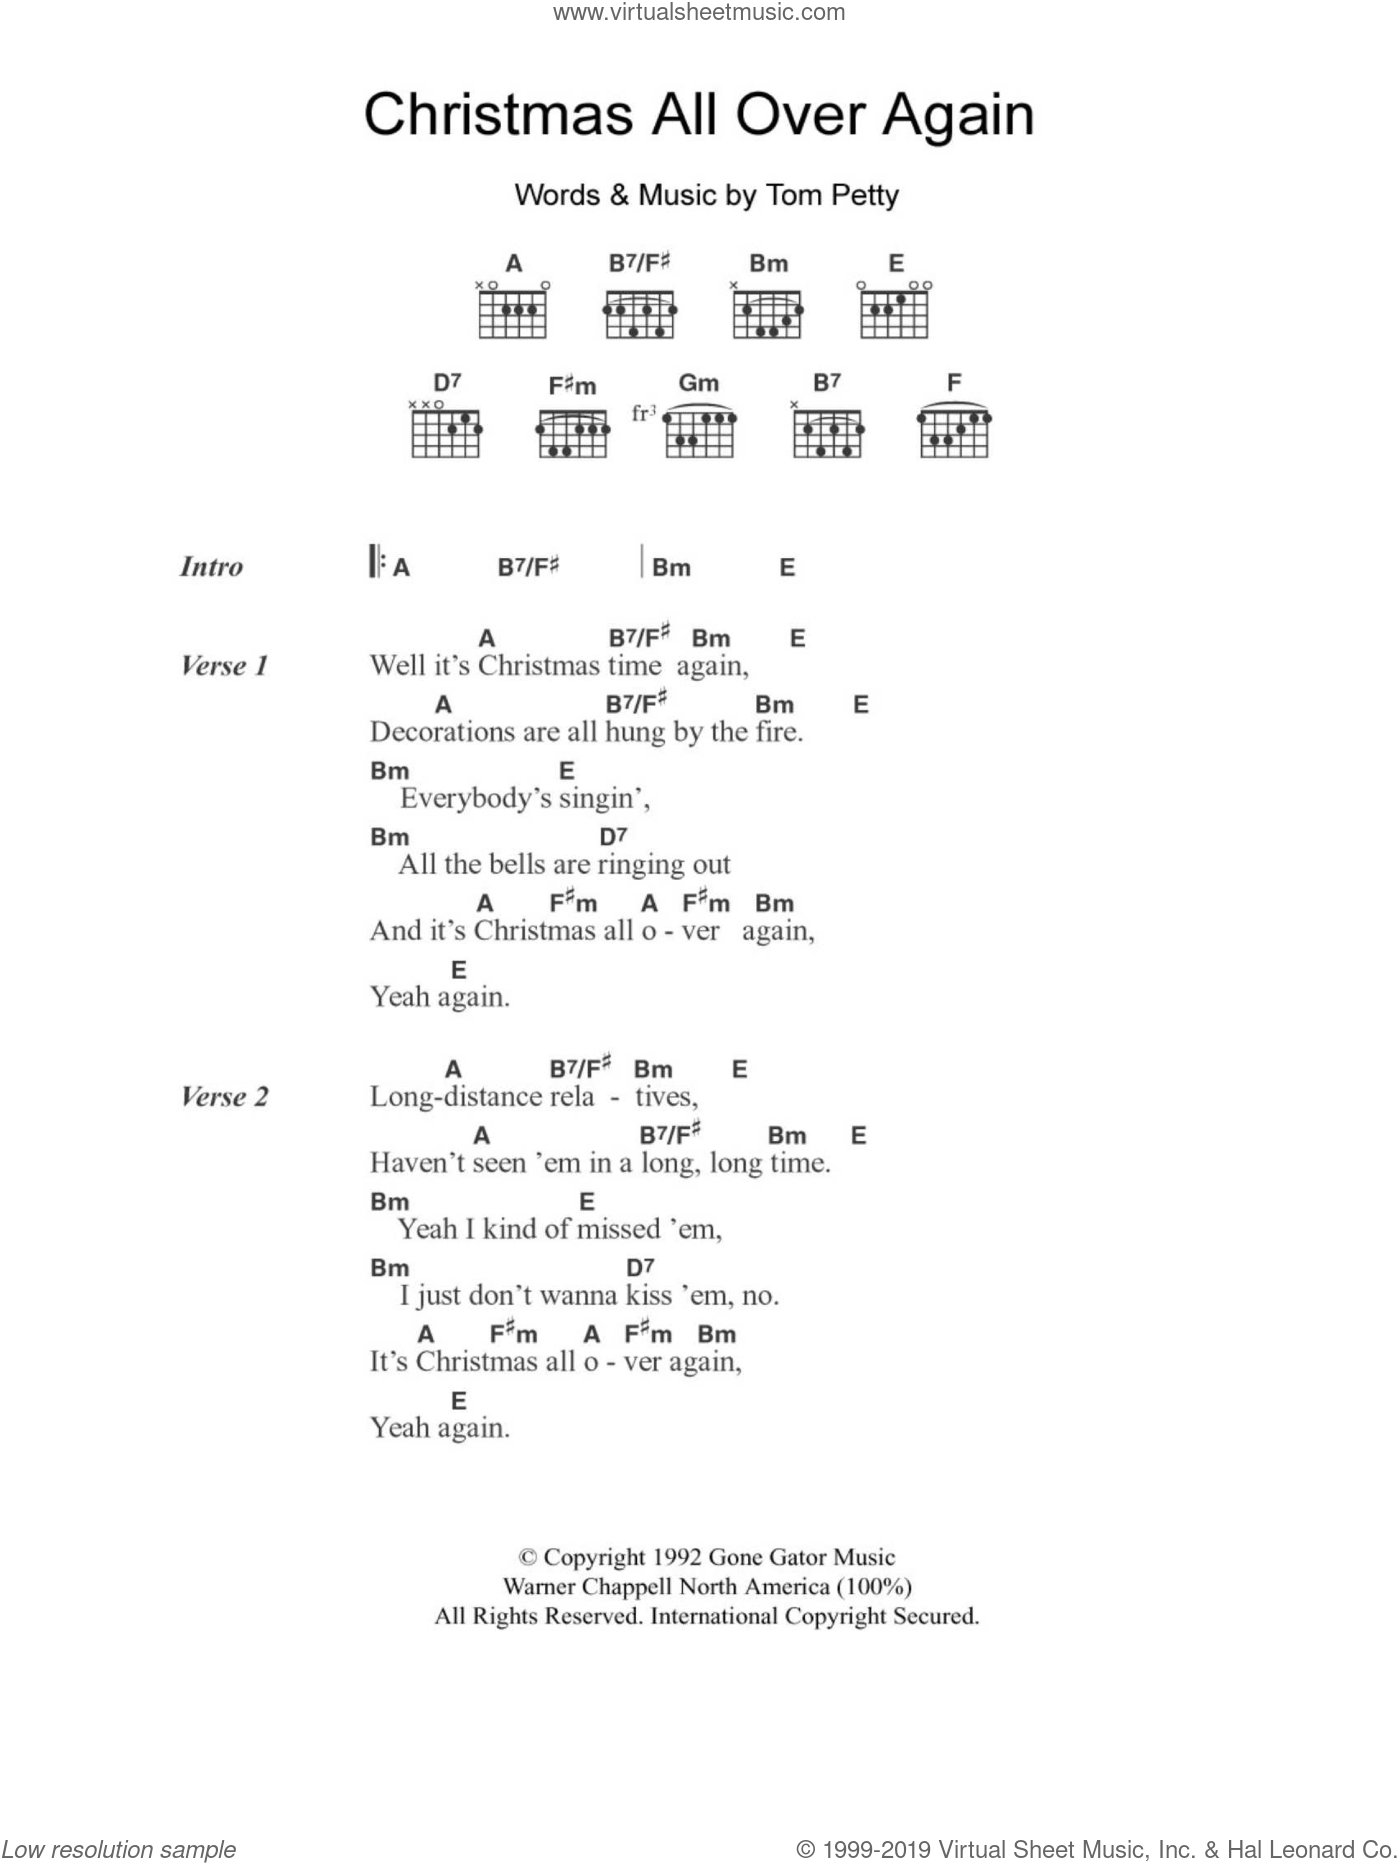 Petty - Christmas All Over Again sheet music for guitar (chords)